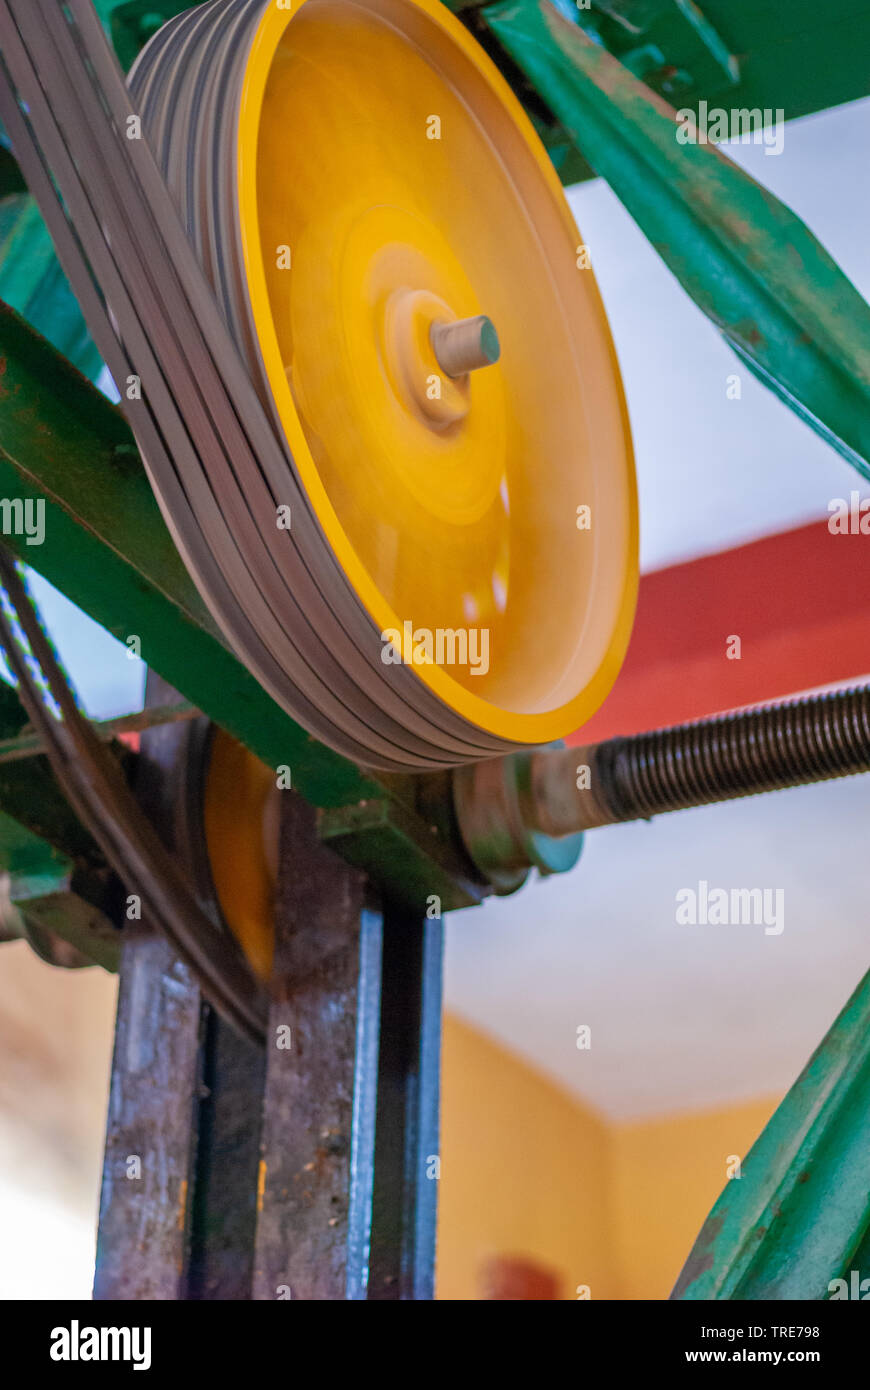 Gears and mechanical belts, taken at the factory in Tecoh, in the Yucatan peninsula - Stock Image